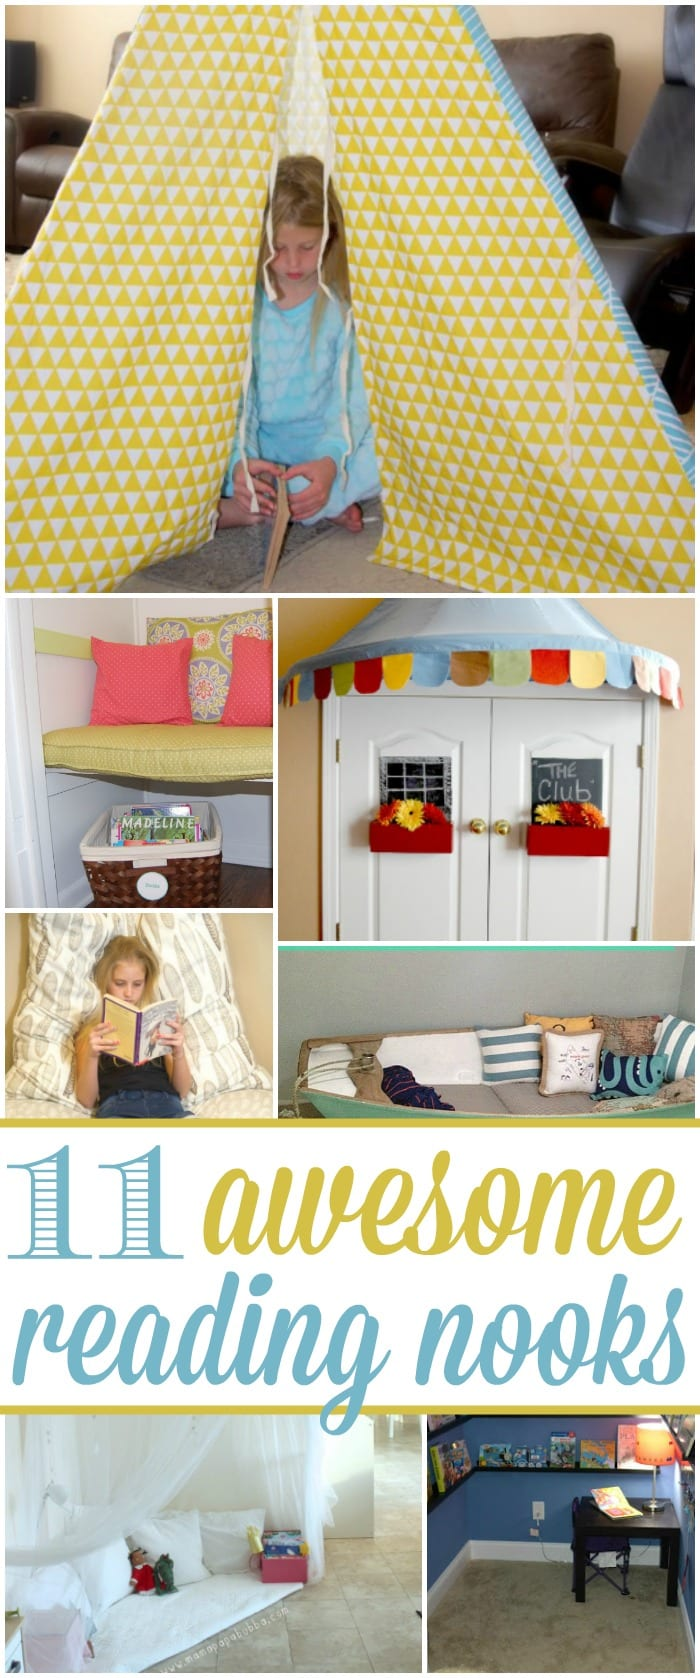 11 awesome reading nook ideas that rock are going to have you smiling from ear to ear, and your kids are going to want one tomorrow!